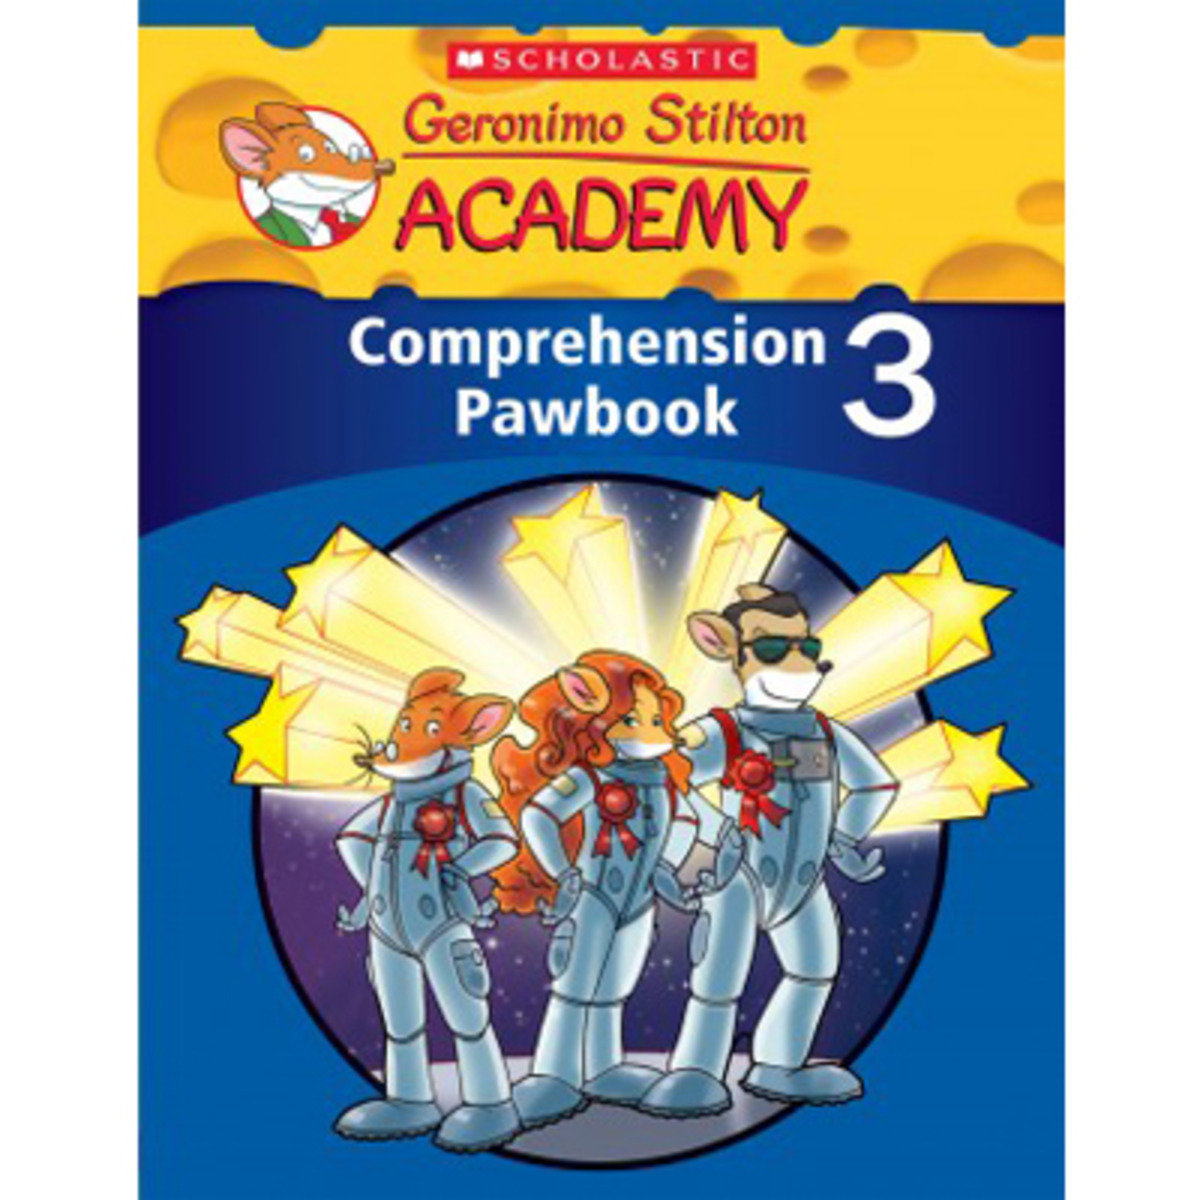 Geronimo Stilton Academy: Comprehension Pawbook Level 3 9789814629652